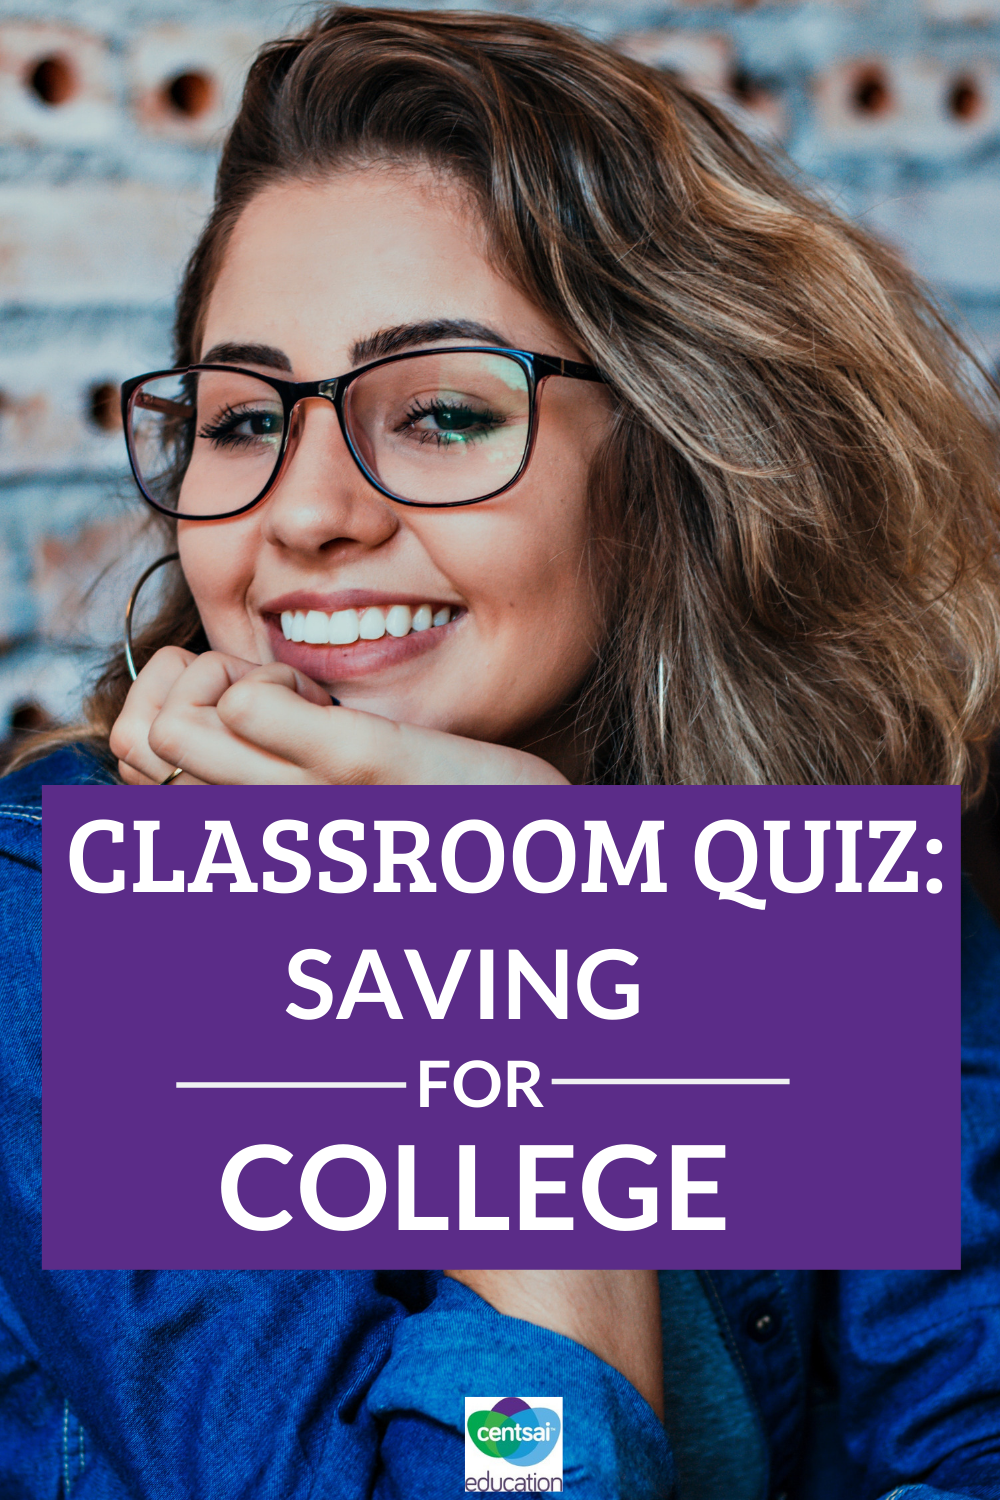 Saving for college is undoubtedly a challenge. Find out how prepared your students are and give them some tips and ideas on how to save money. #savingmoney #college #budget #incollege #CentSaiEducation